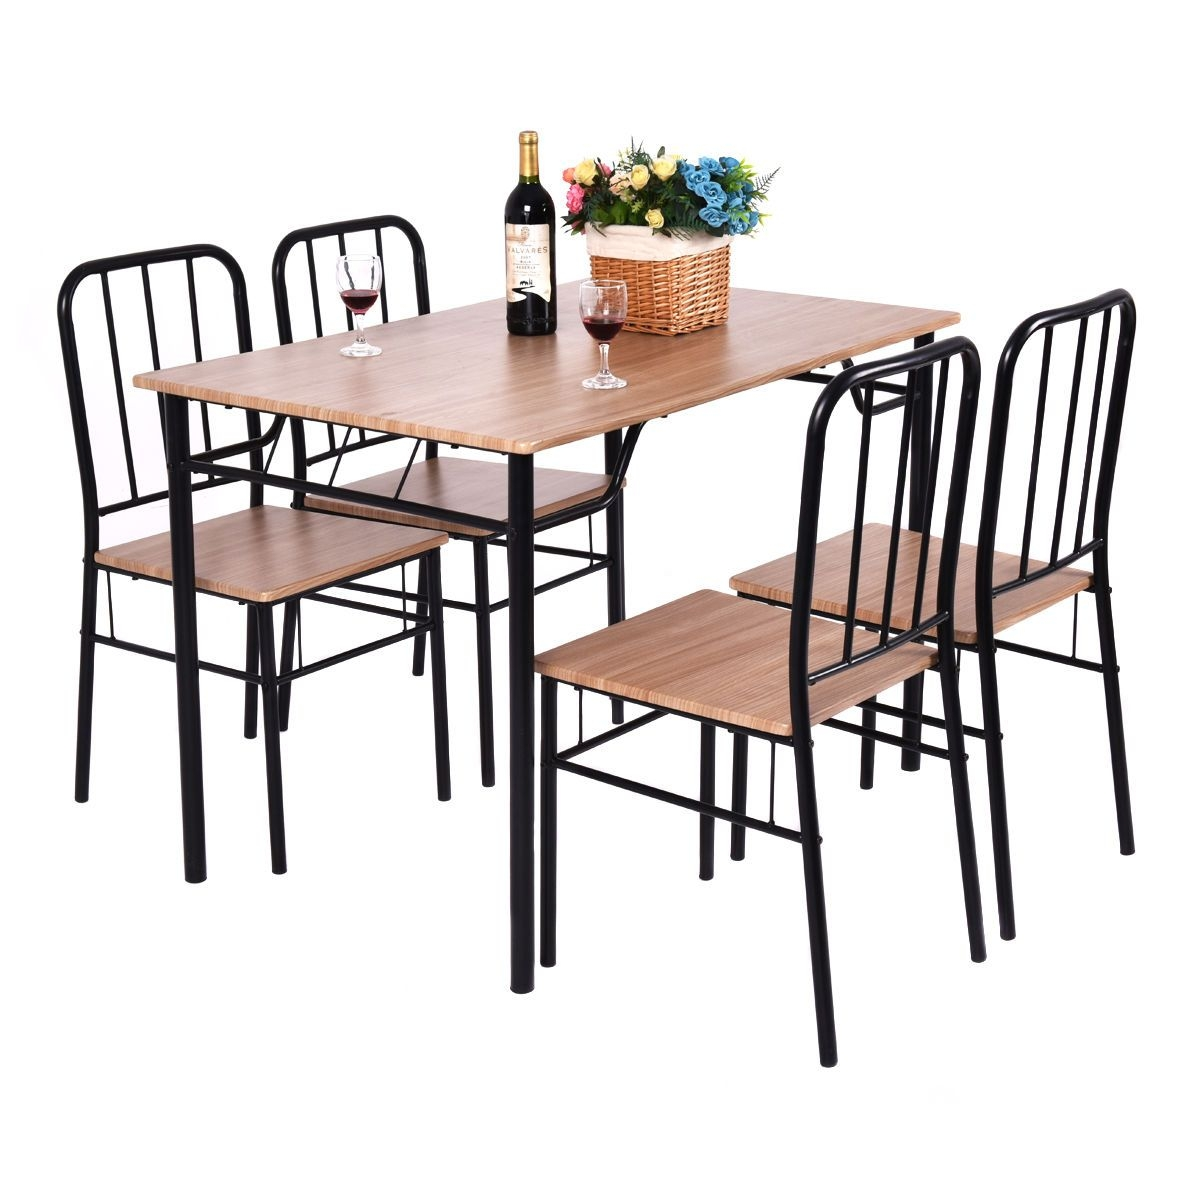 Aliexpress  Buy Giantex 5 Piece Dining Set Table And 4 Chairs Metal Wood Home Modern